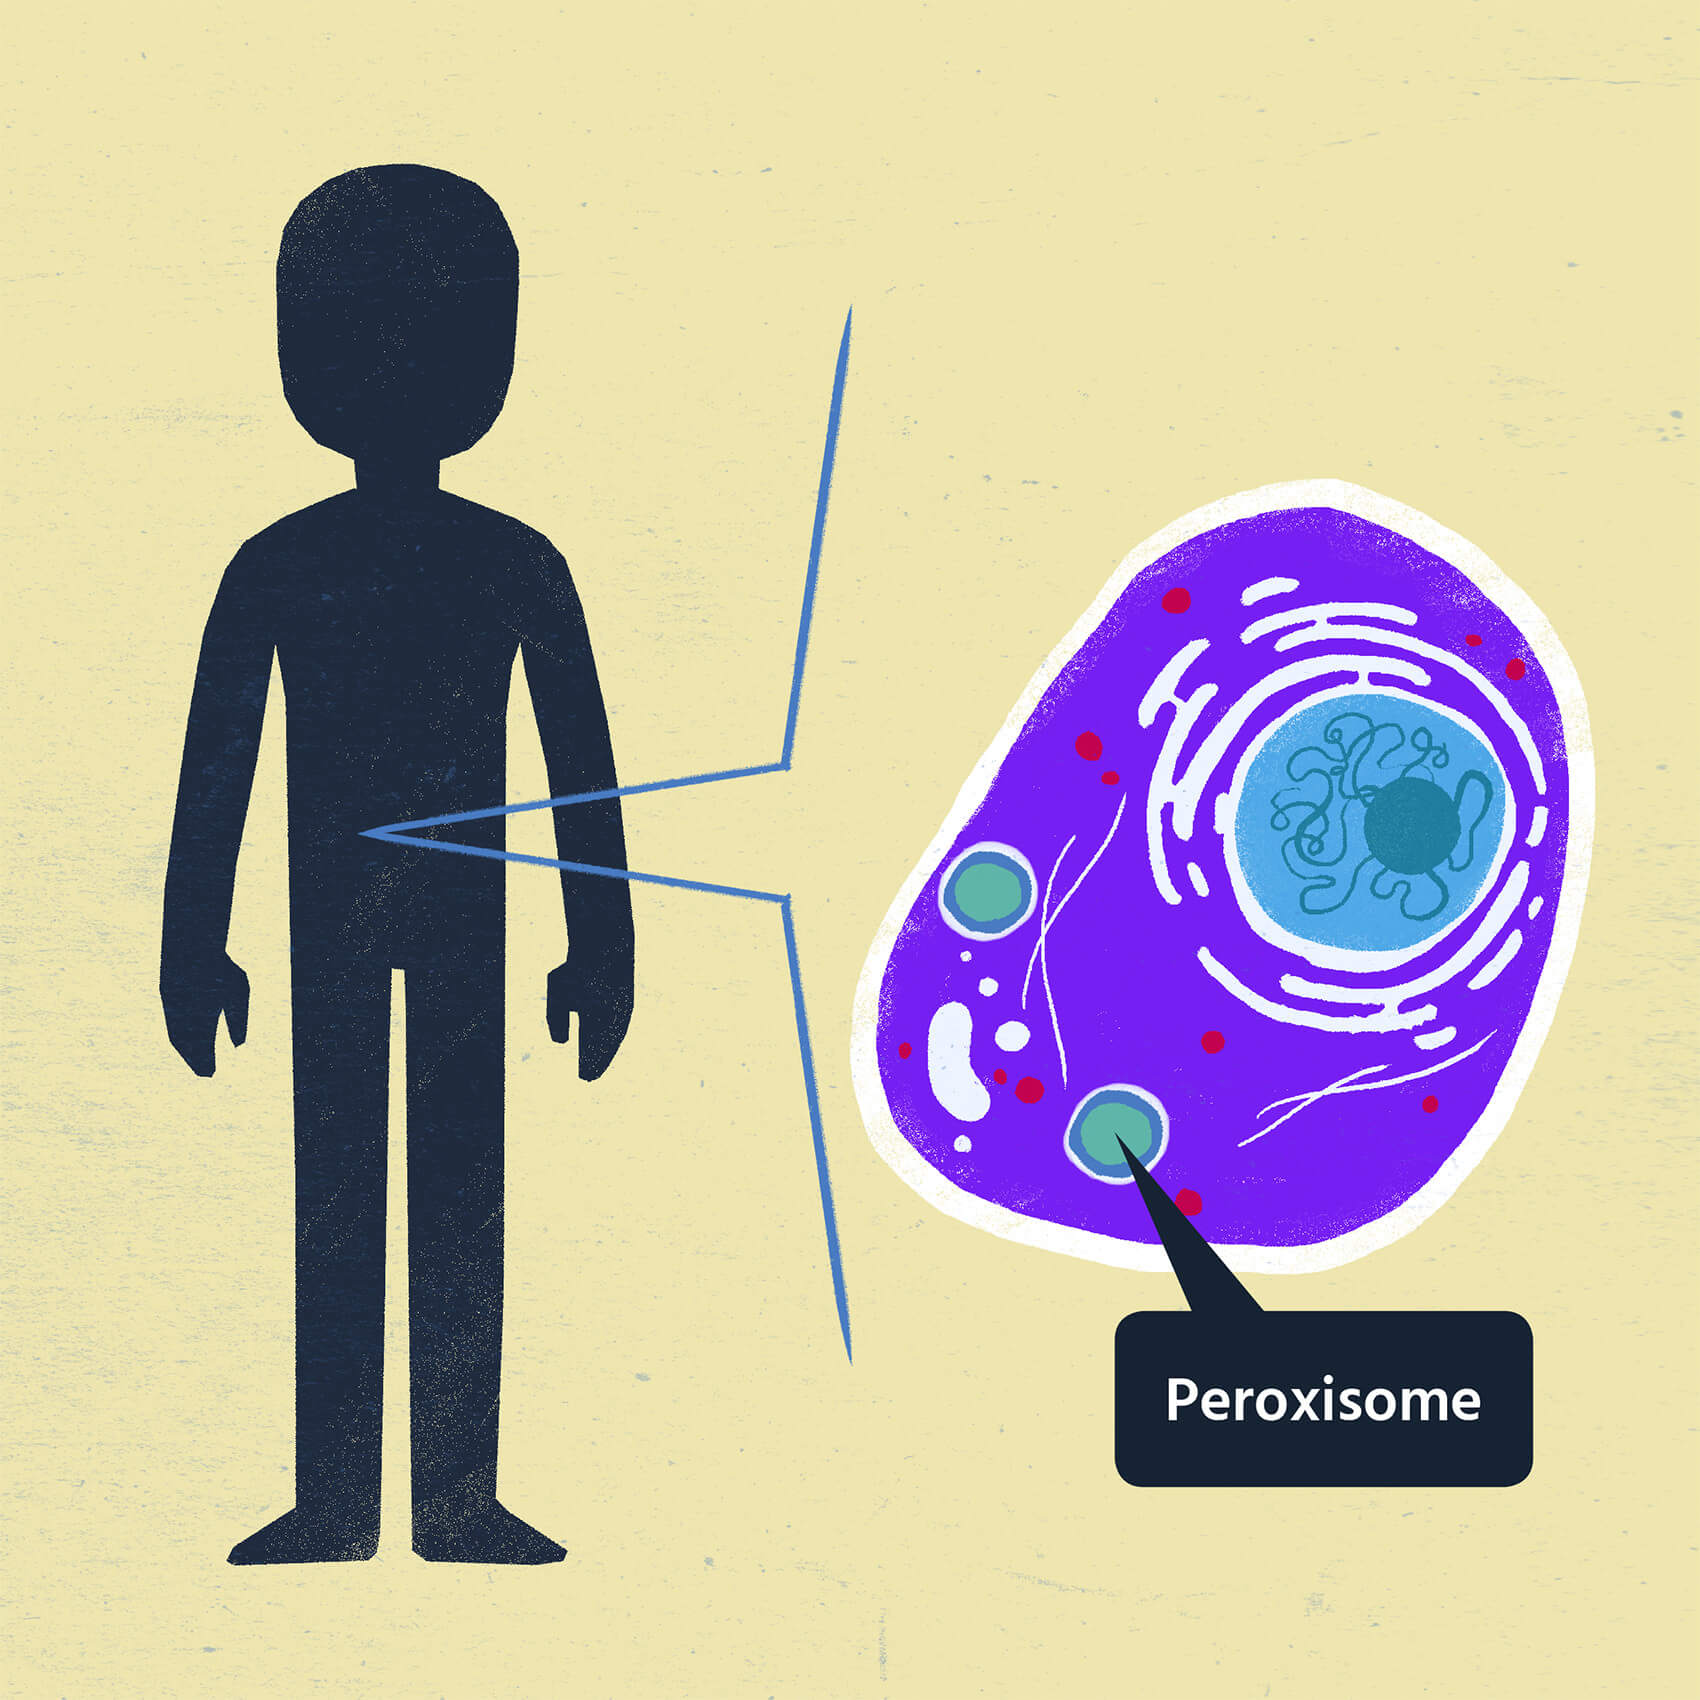 Illustration of a human cell with a focus on the peroxisome. The loss of peroxisome function causes Zellweger spectrum disorders.